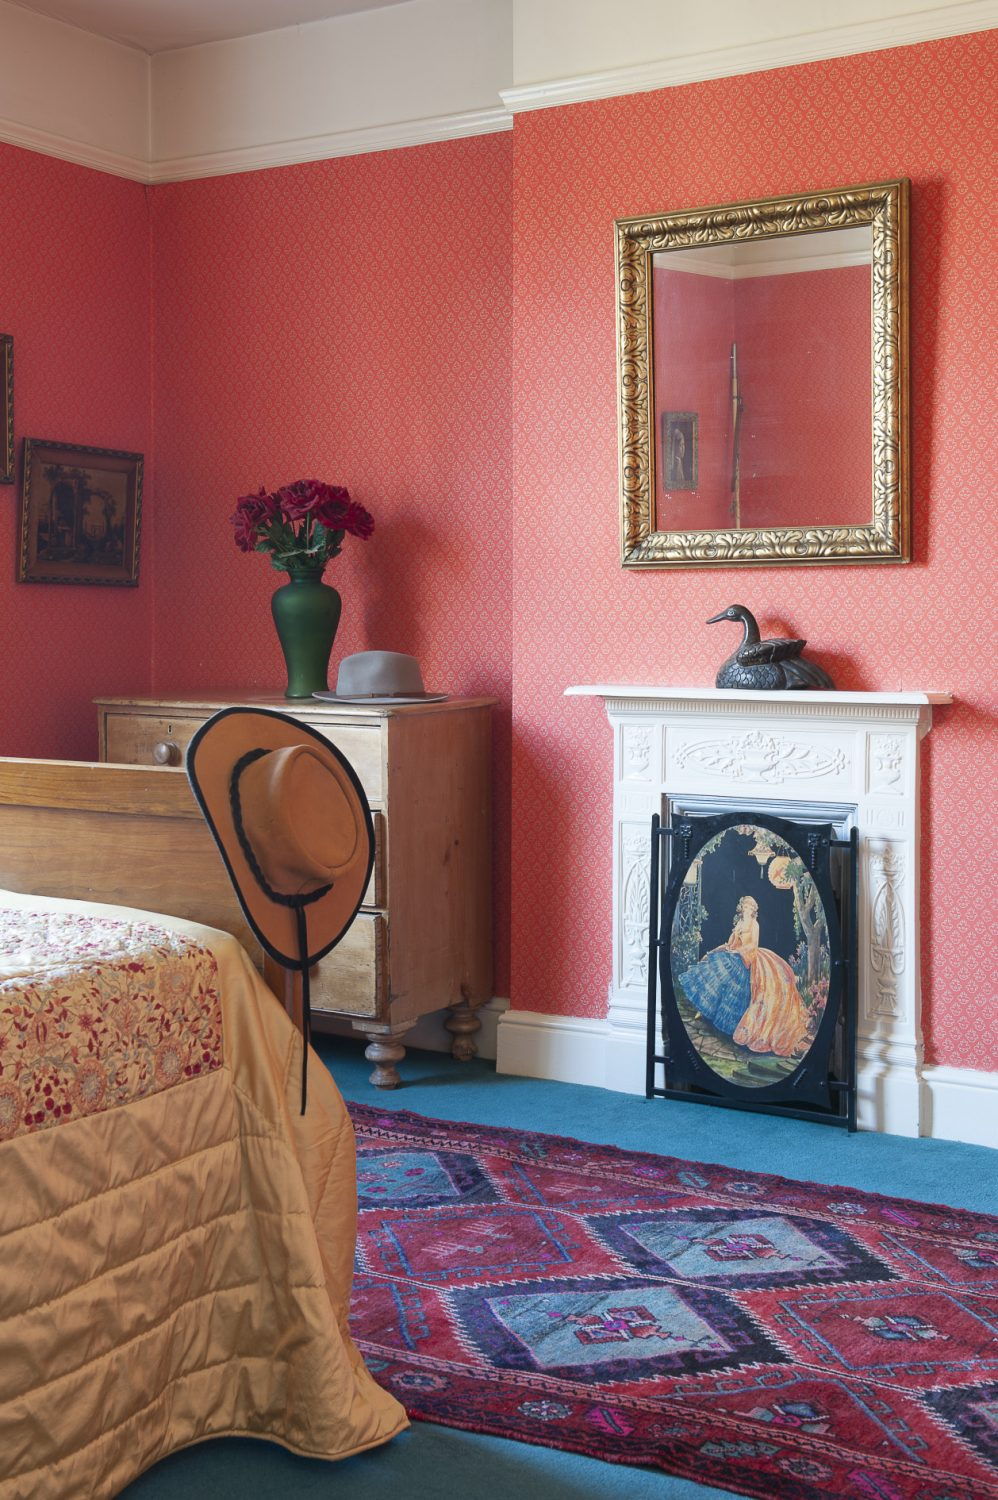 A warm and welcoming guest suite is home to an early Victorian bedspread with a superb gold satin counterpane that Louise found in a charity shop for £20